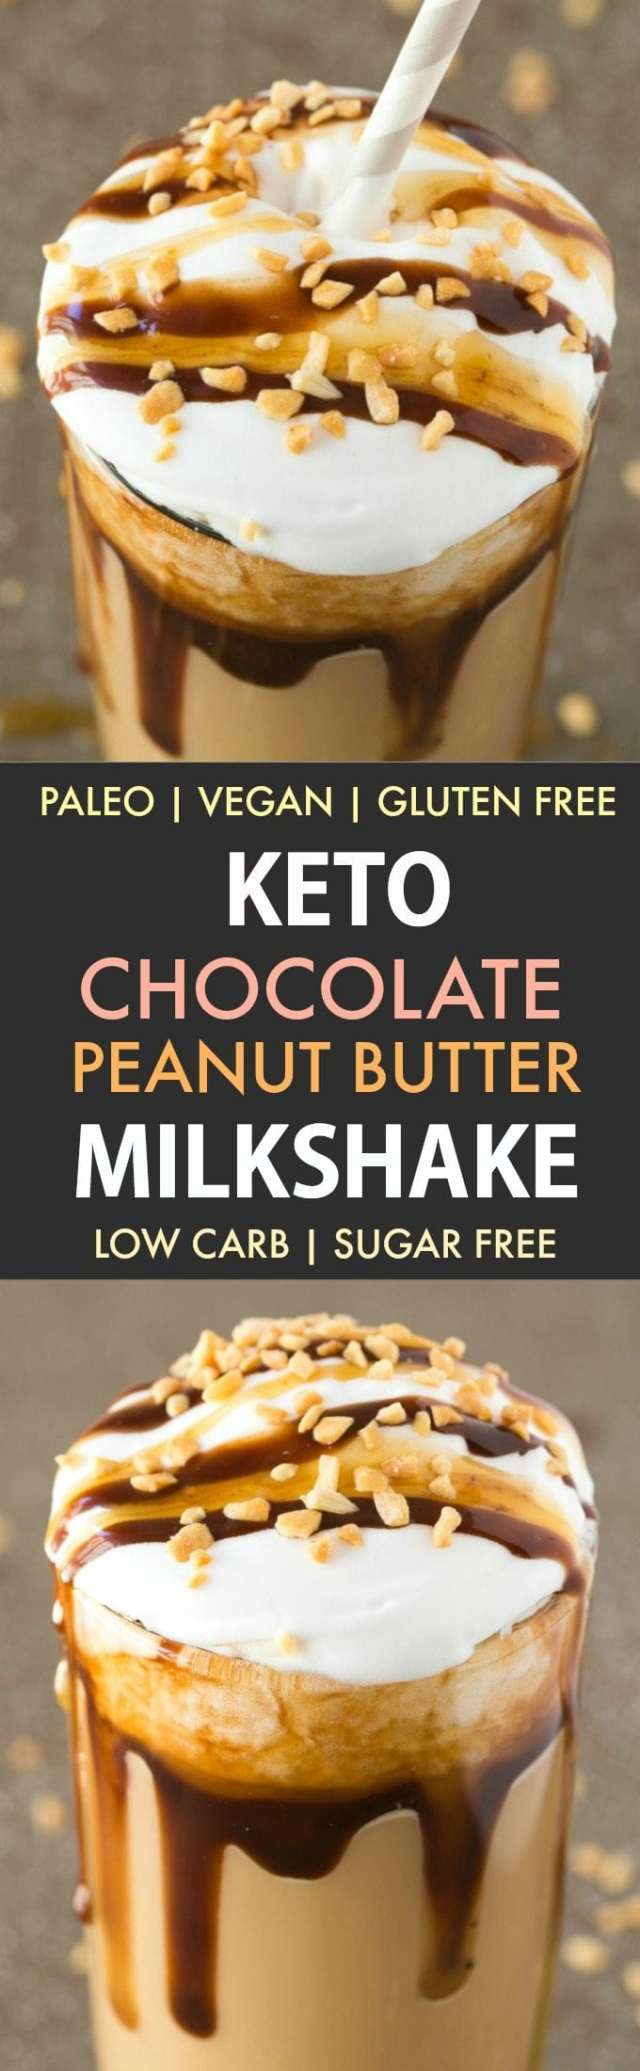 Keto Chocolate Peanut Butter Milkshake (Dairy Free, Paleo, Vegan, Gluten Free)- Insanely thick and creamy chocolate peanut butter milkshake which tastes like snickers! It's low carb and sugar free too! {v, gf, p recipe}- #keto #ketobreakfast #lowcarb #smoothie #dairyfreemilkshake | Recipe on thebigmansworld.com